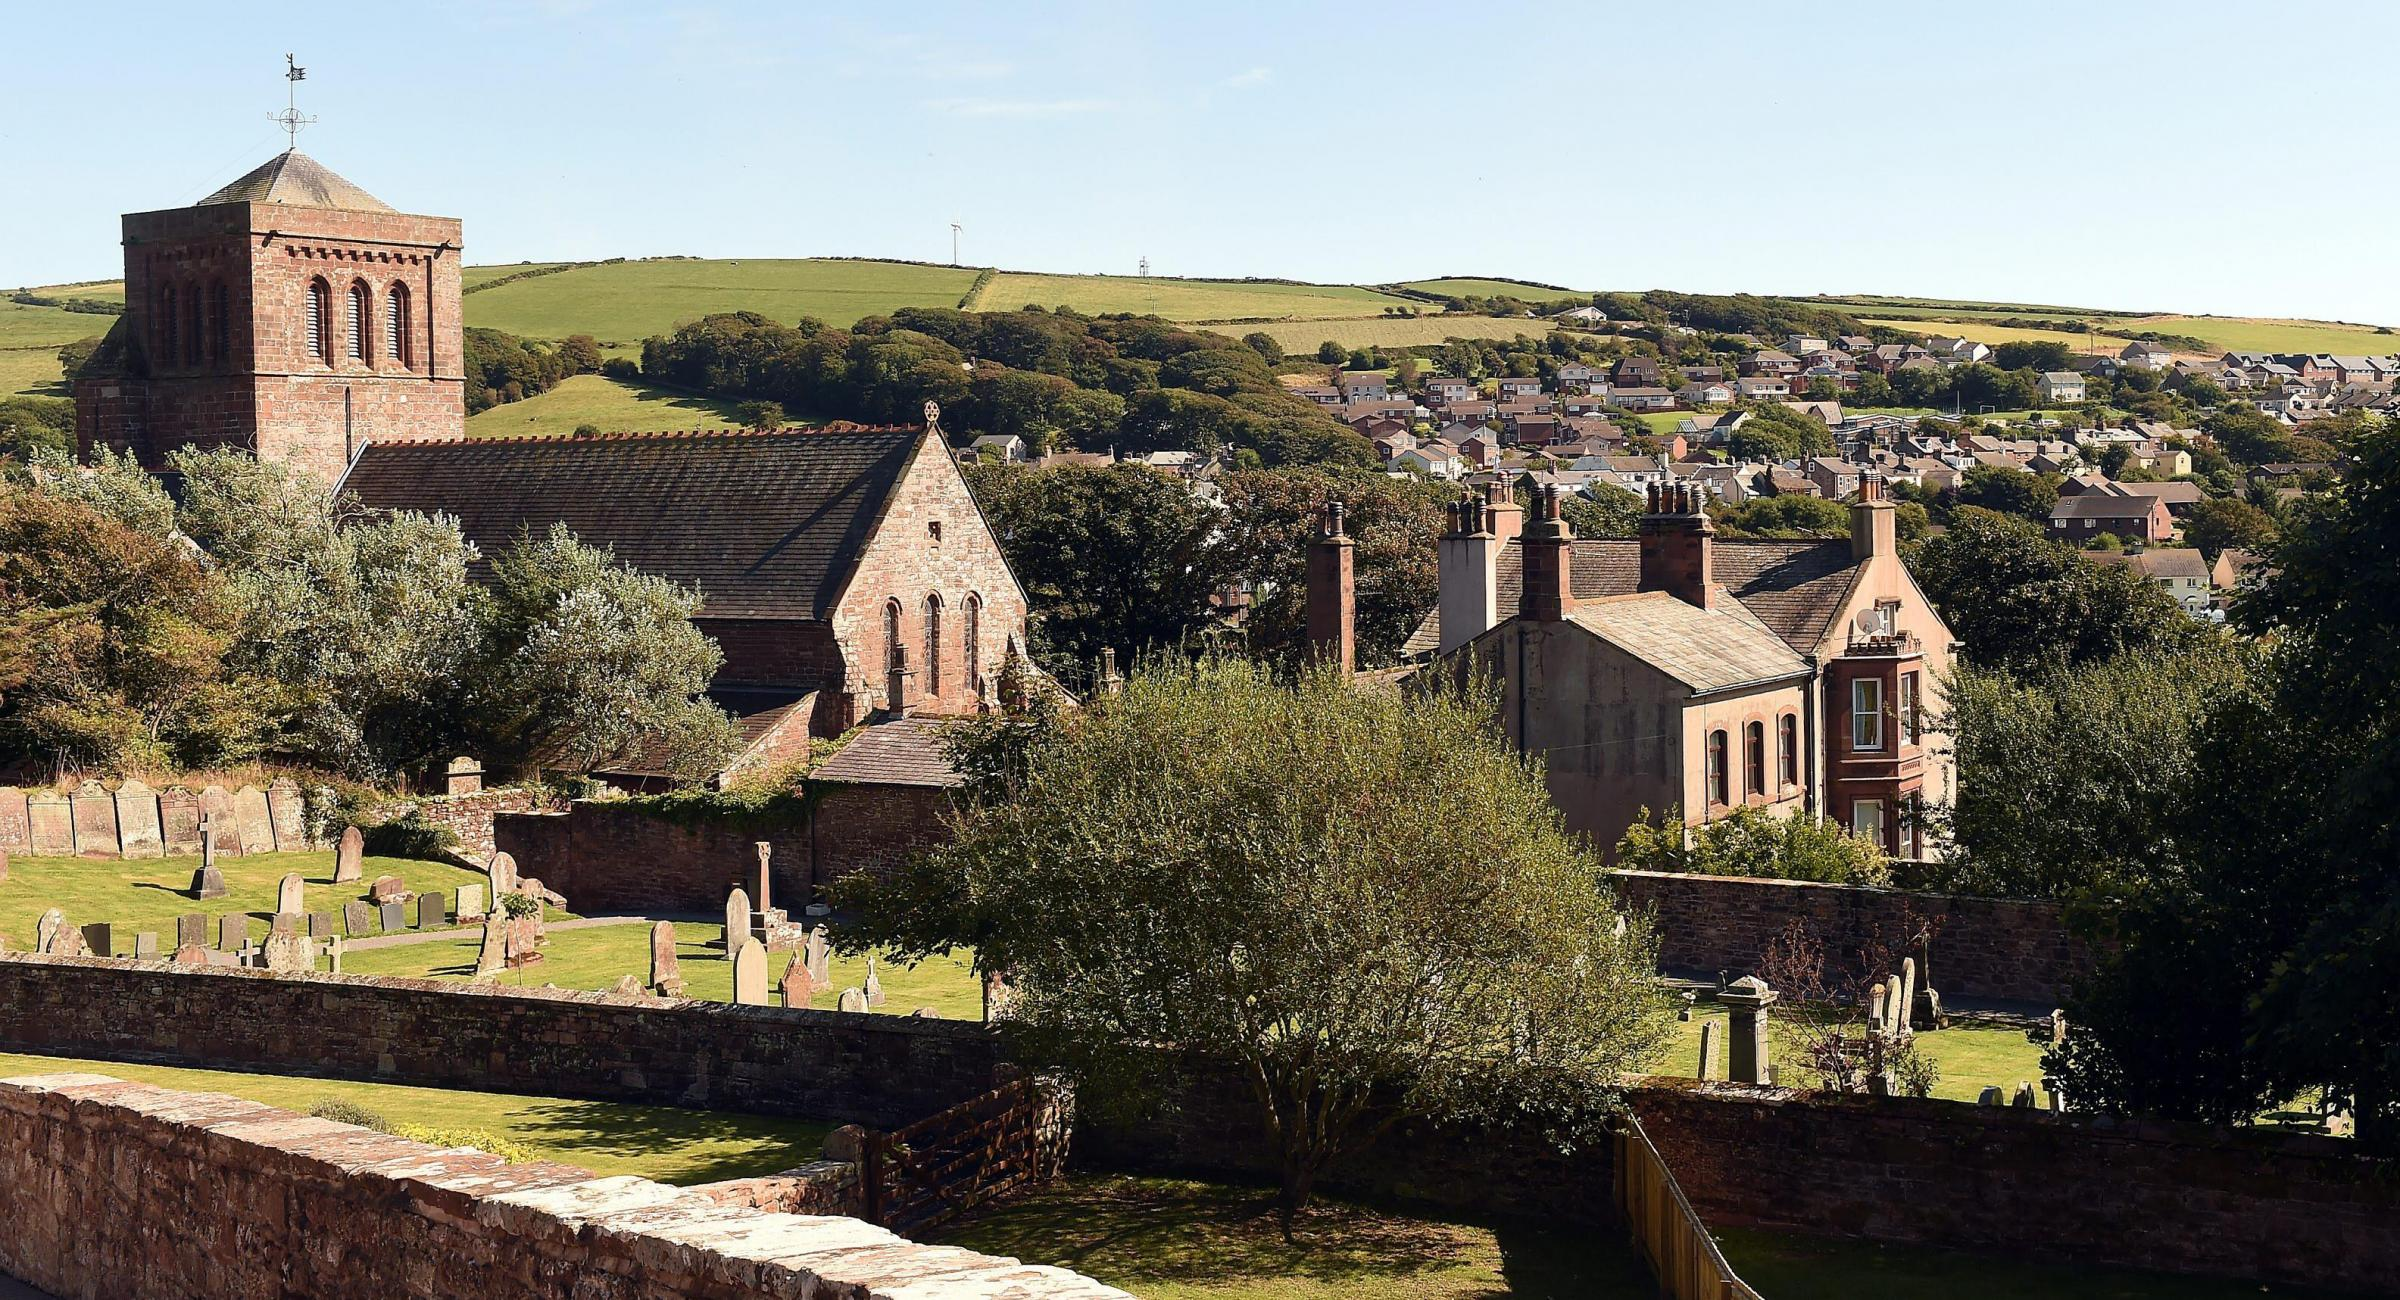 The village of St Bees with St Bees Priory